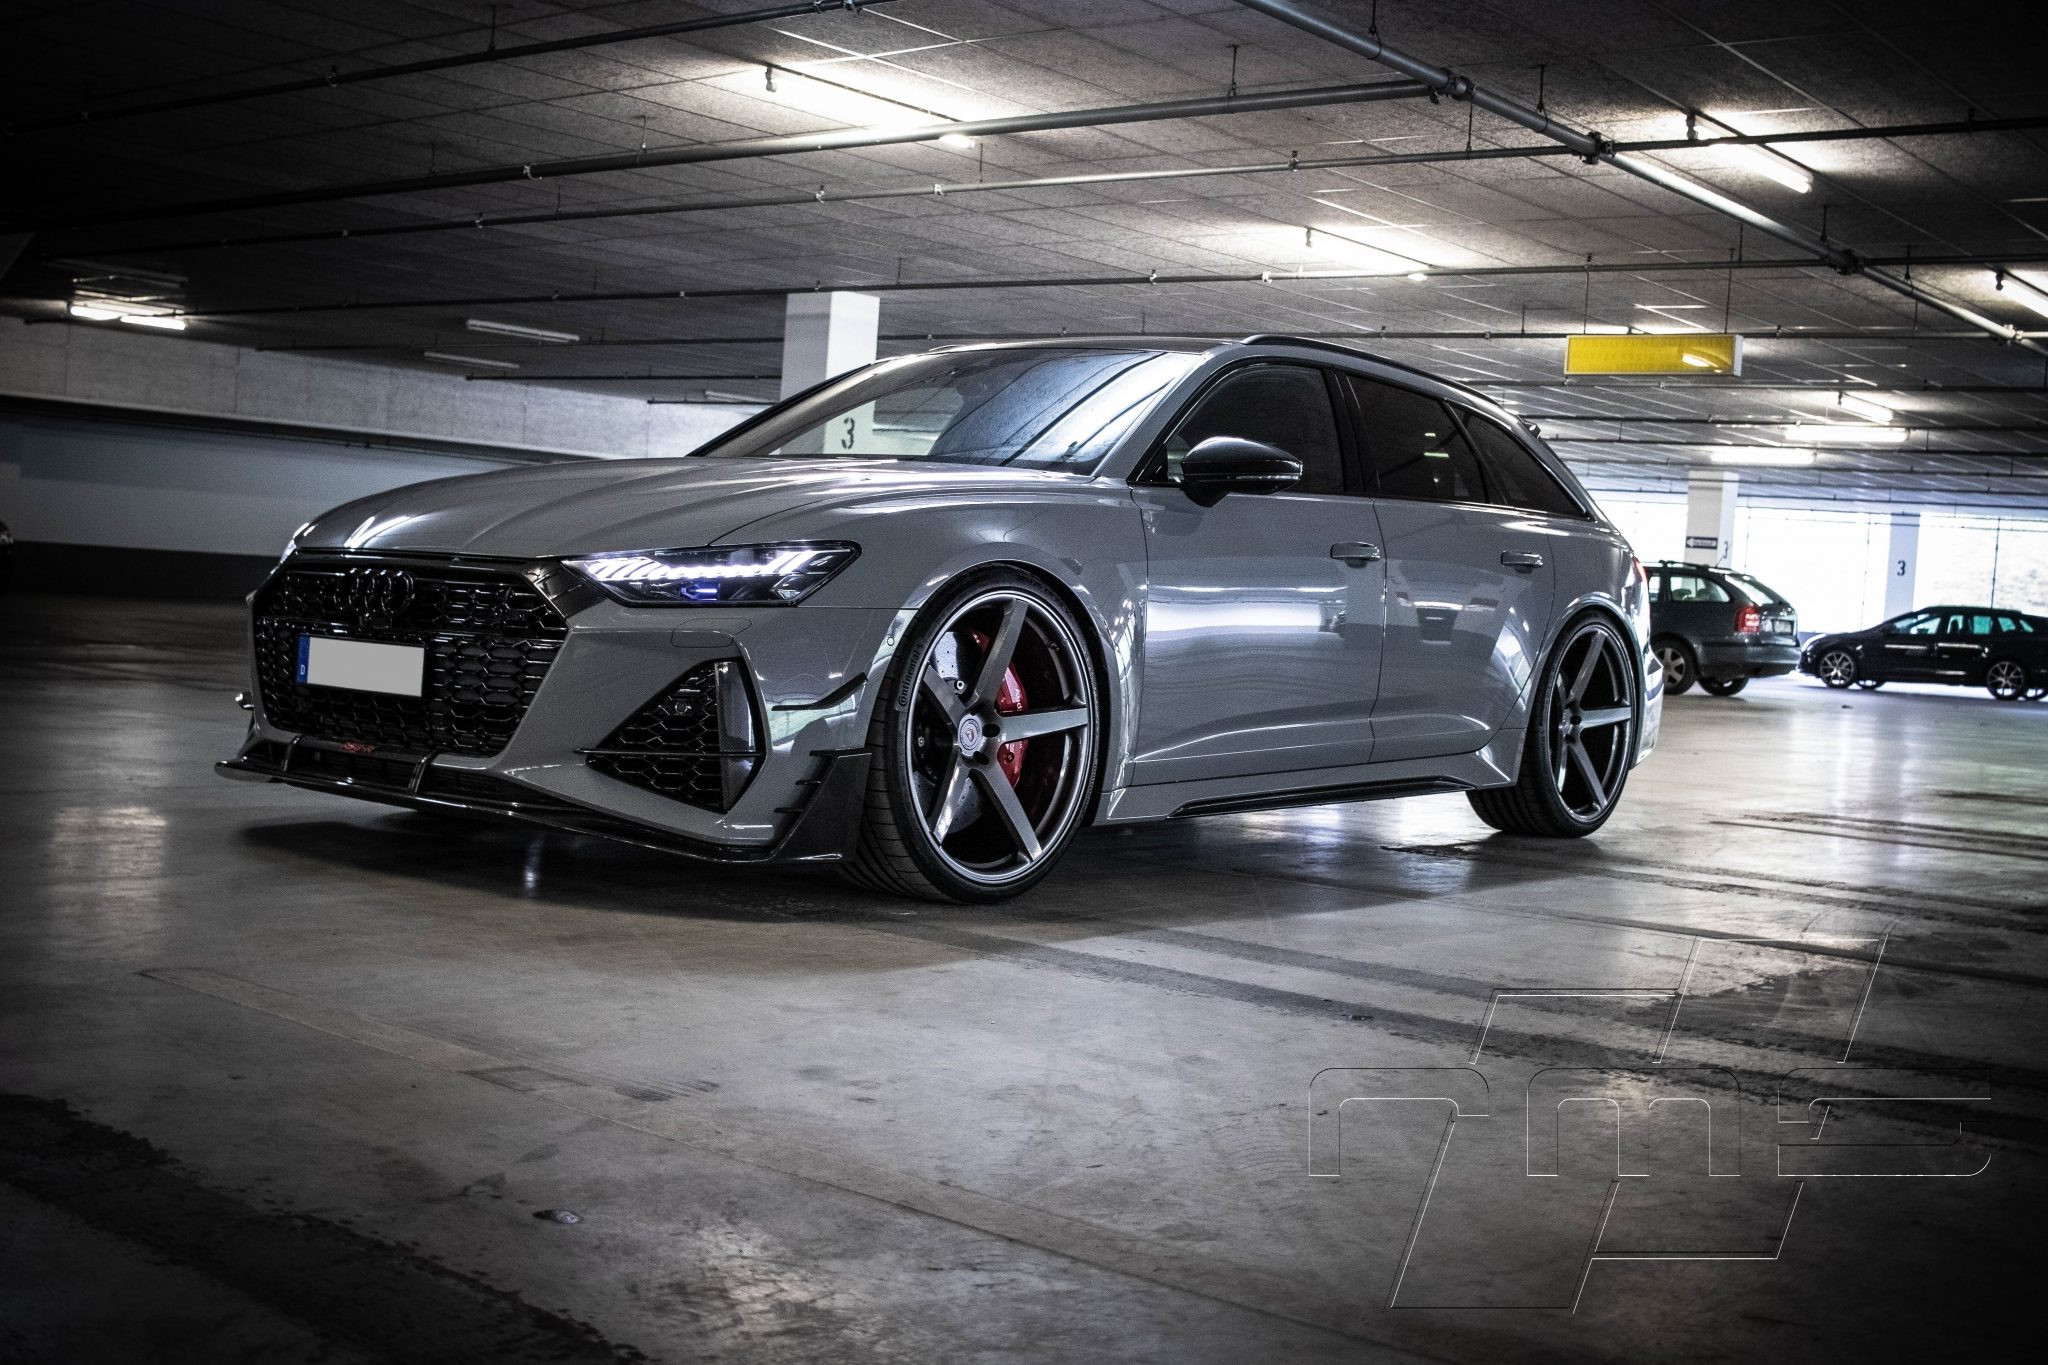 Abt Audi RS6-R C8 1of125